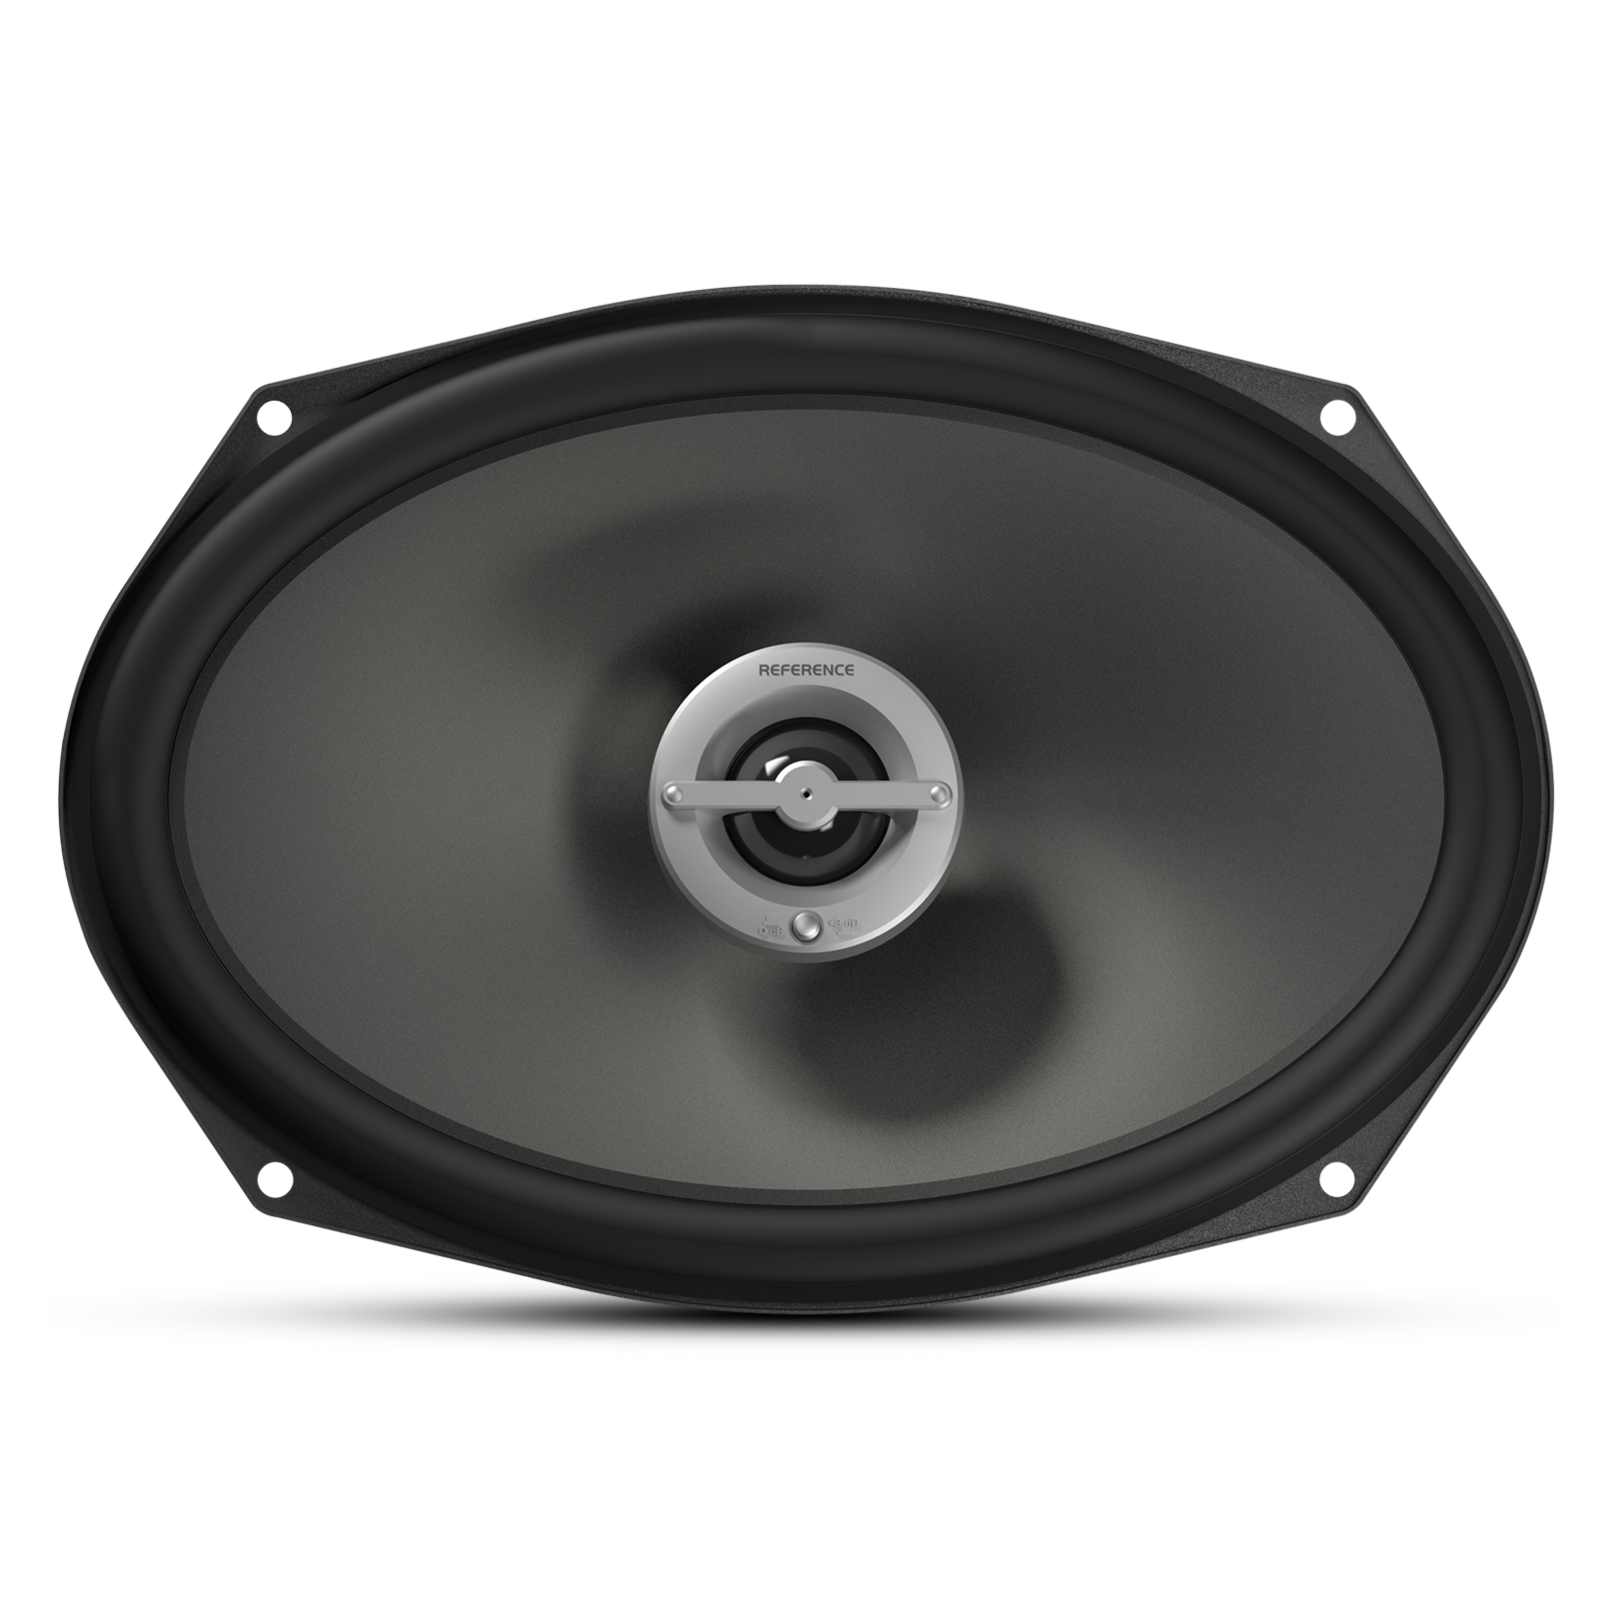 """Reference 9602ix - Black - Integrated 5-1/4"""" woofer with coaxially mounted tweeter - Detailshot 1"""